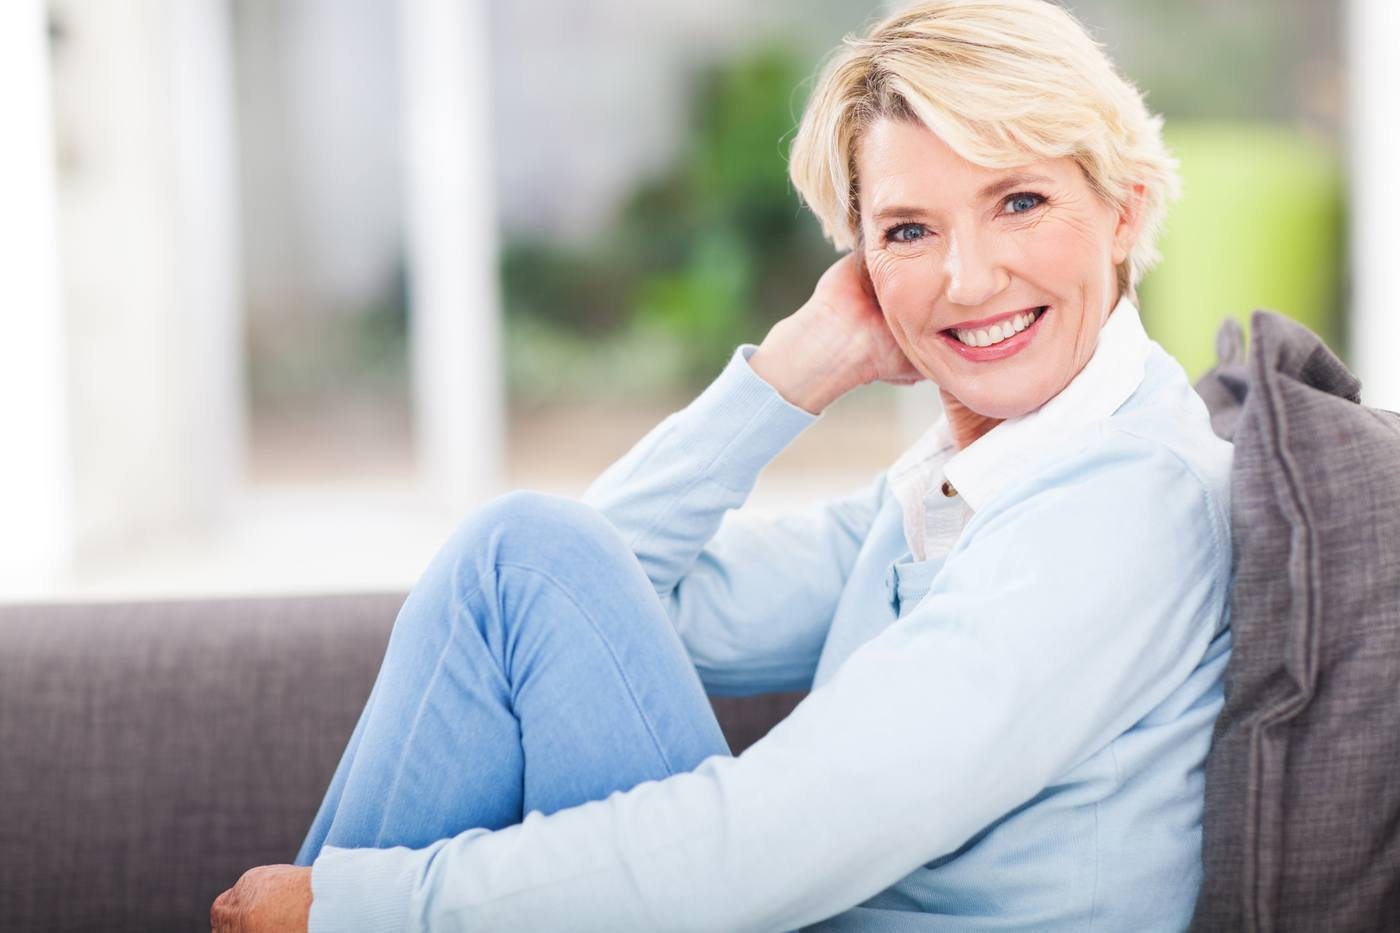 Blond Female Sitting On Gray Couch